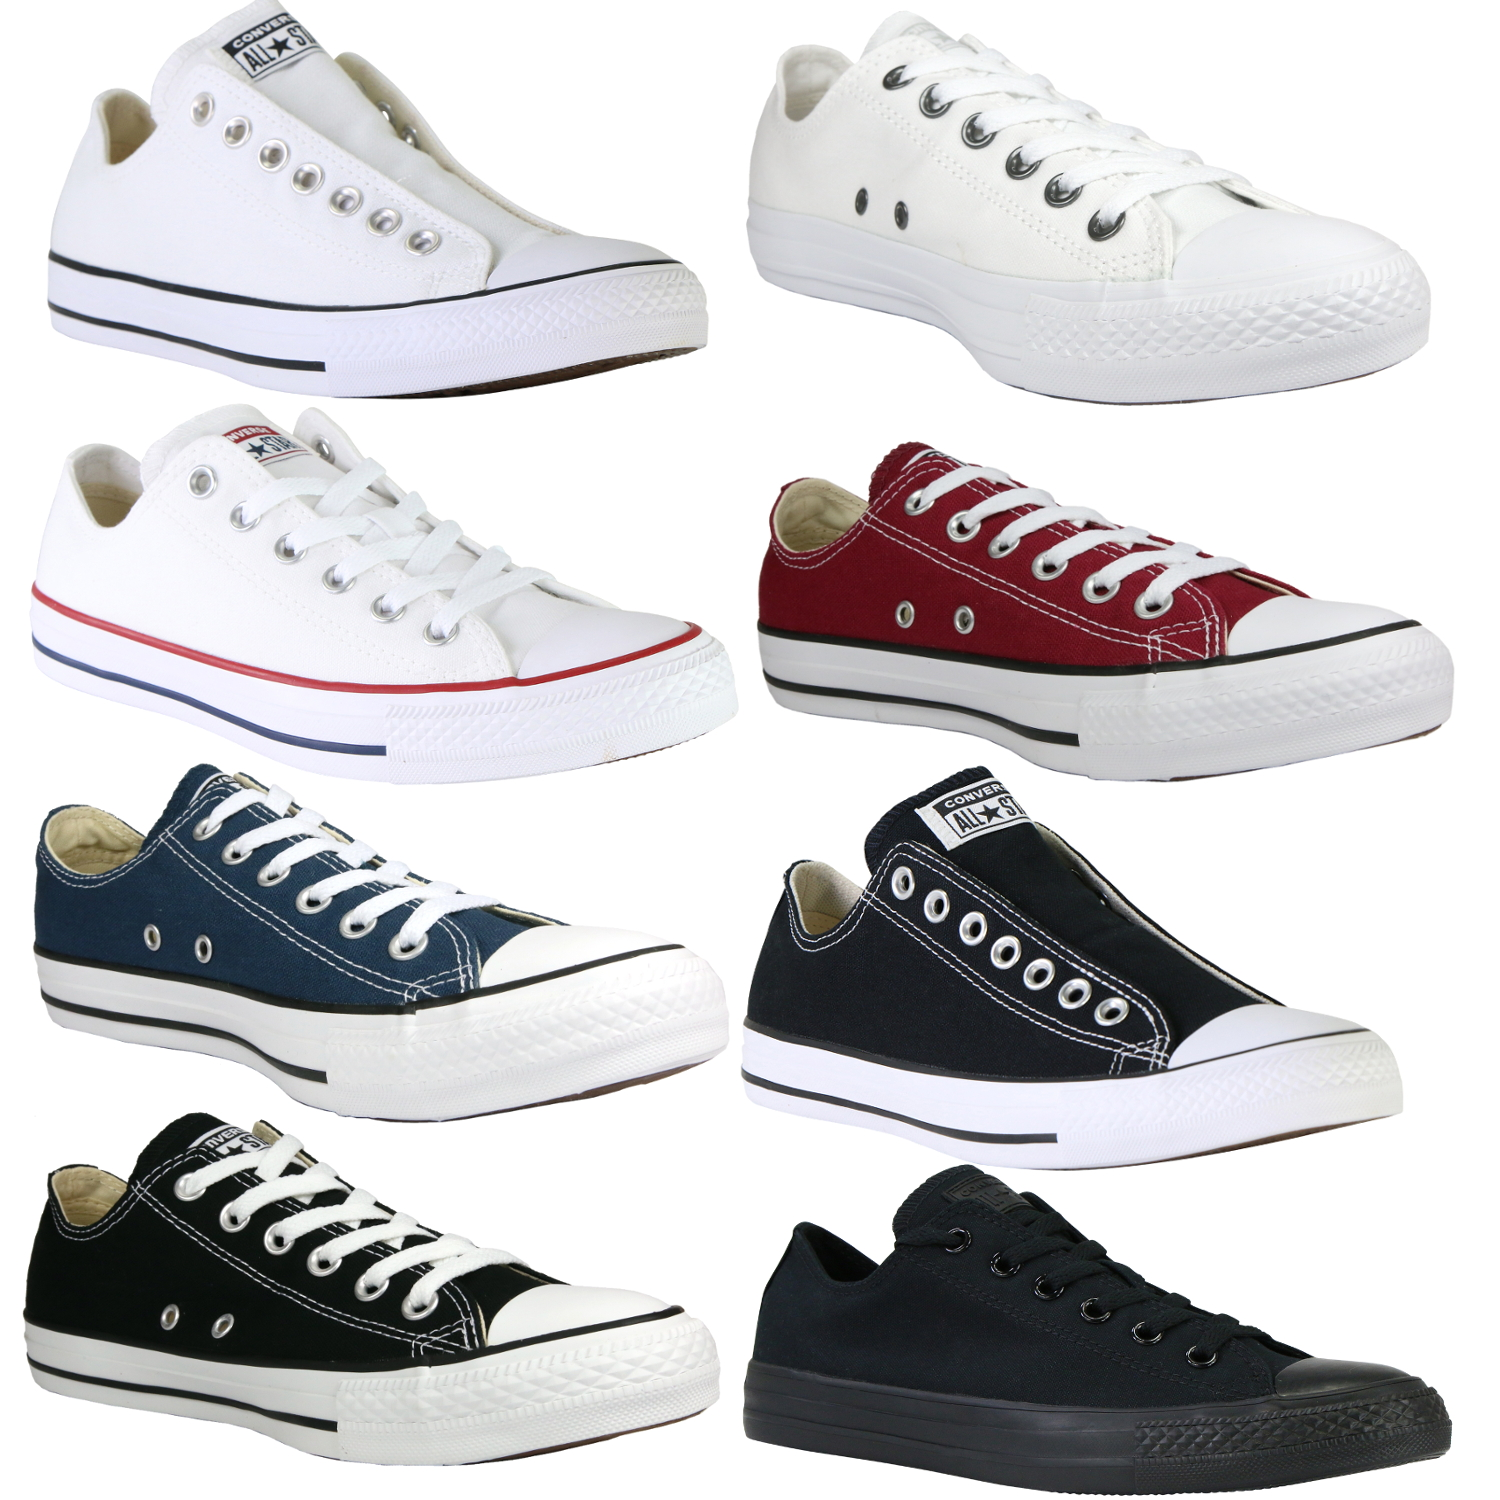 brand new 8bfb9 01dad Details about Converse Chucks All Star Ox Canvas Shoes Trainers Various  Colours- show original title